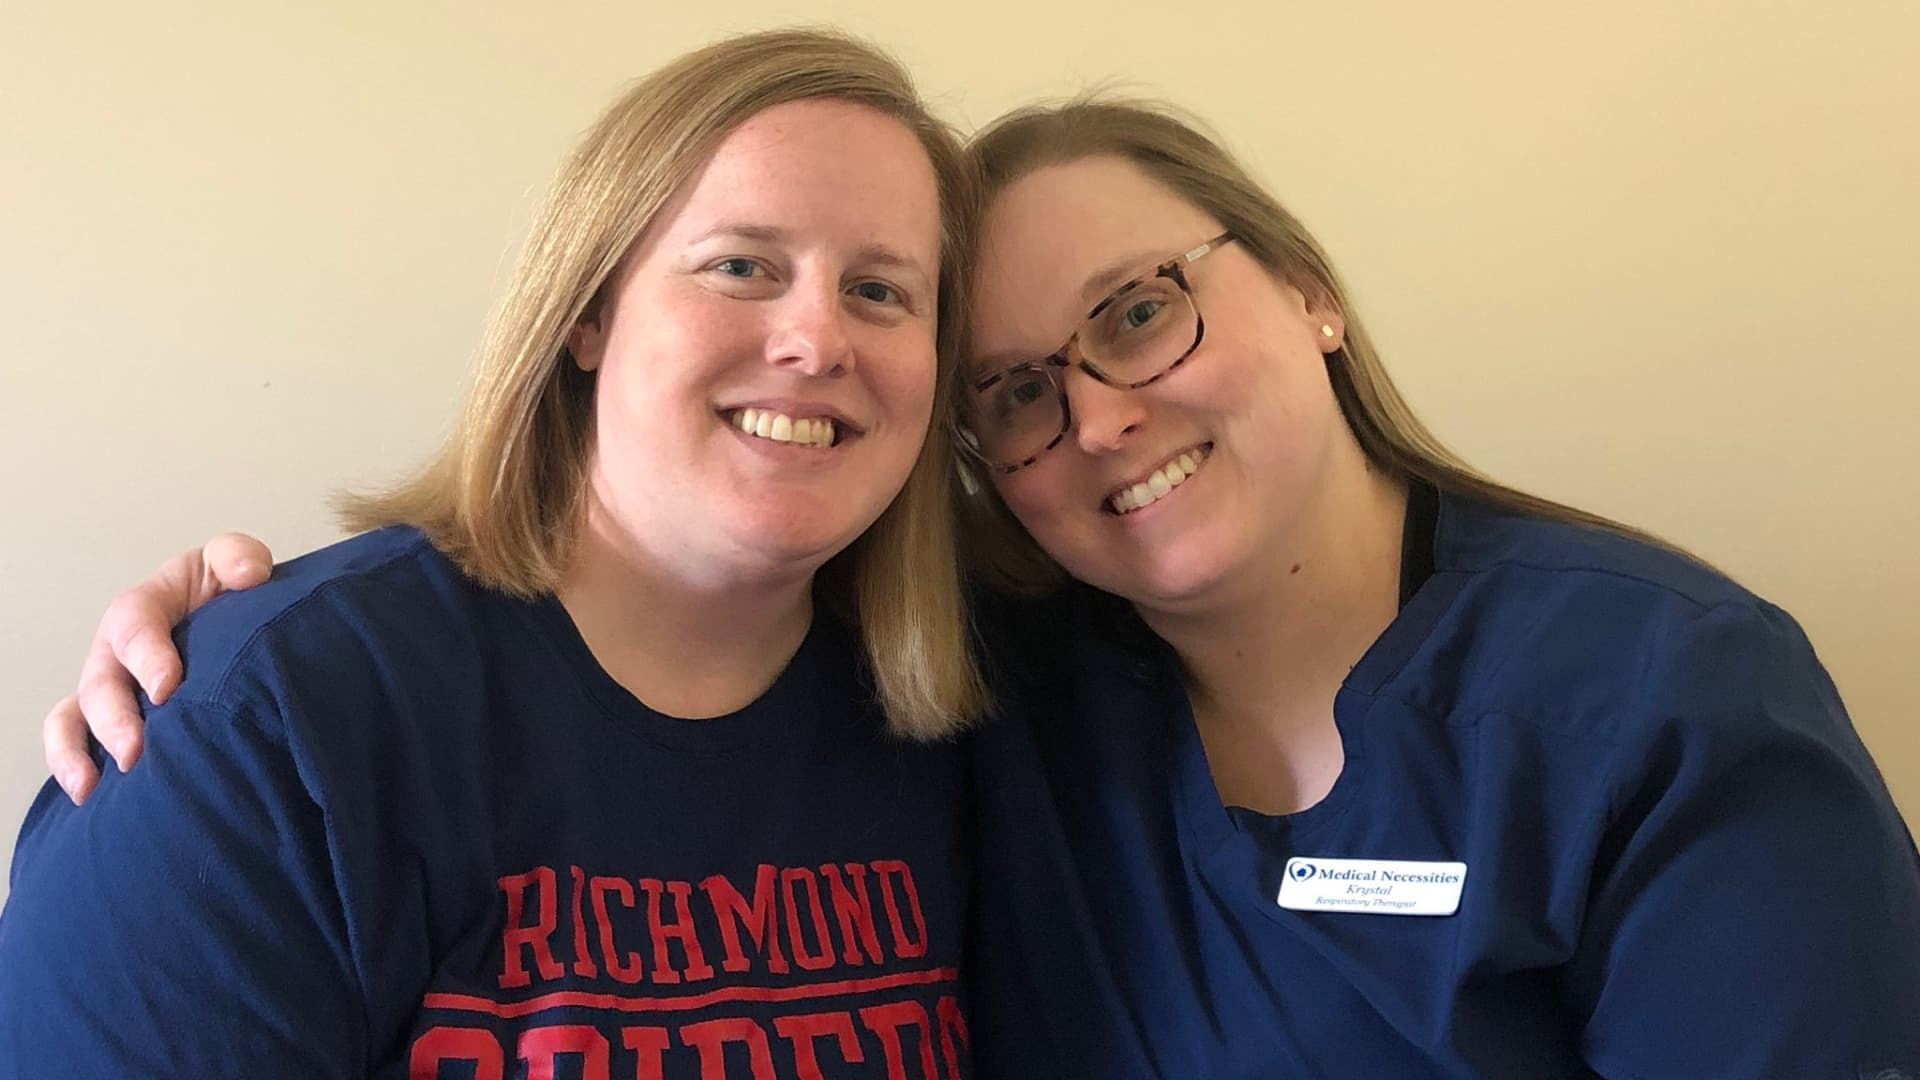 Sarah has been working from home for about a month and this week helped her wife, Krystal, a health-care professional, set up an office from their guest bedroom.